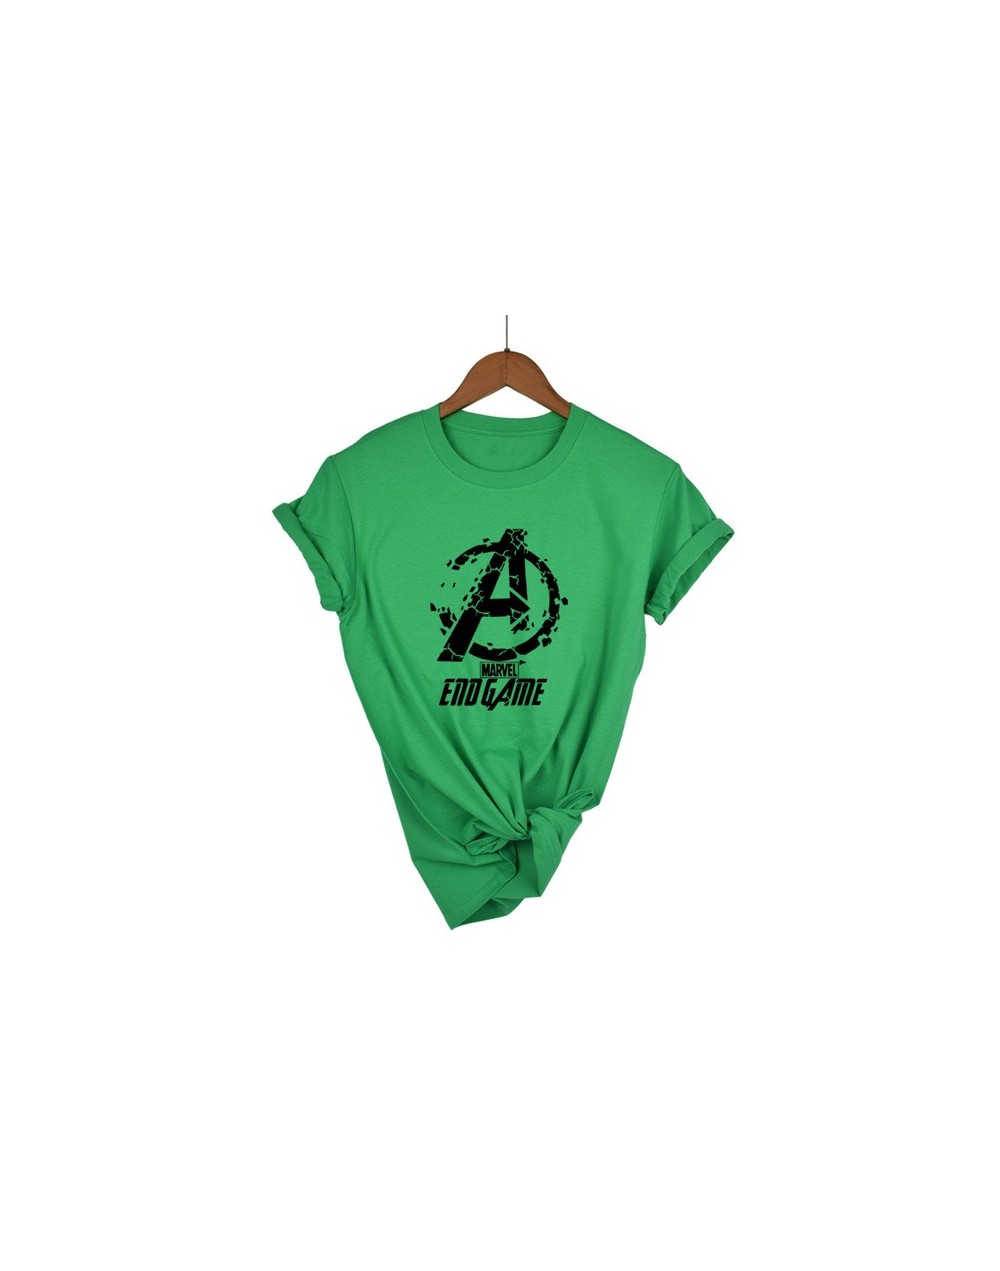 END GAME MARVEL t Shirt woman cotton short sleeves Casual male tshirt marvel shirts tops Graphic Tees plus size - green - 4V...